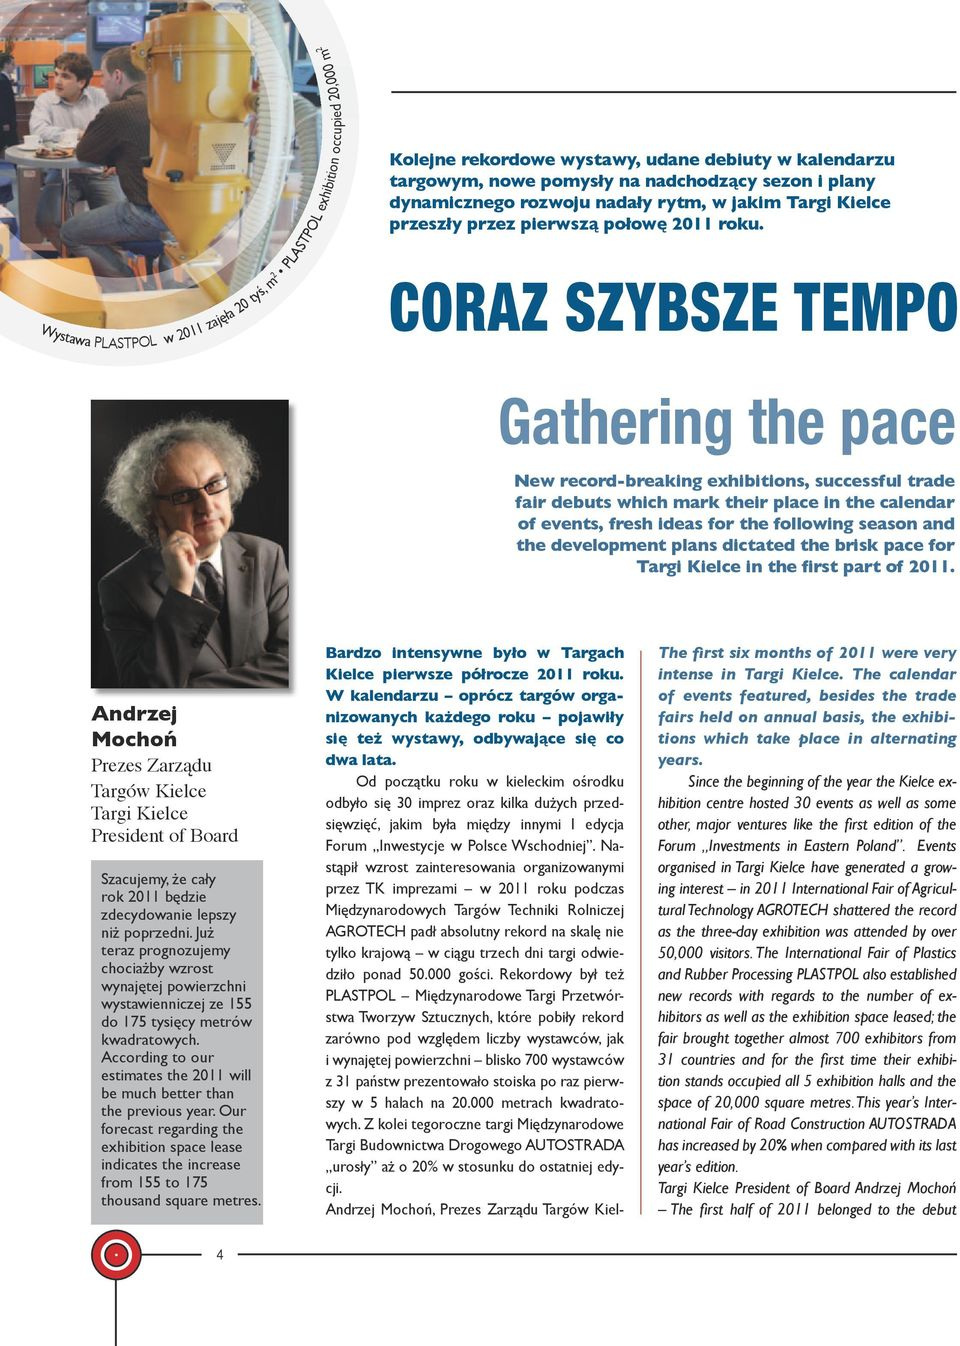 CORAZ SZYBSZE TEMPO Gathering the pace New record-breaking exhibitions, successful trade fair debuts which mark their place in the calendar of events, fresh ideas for the following season and the